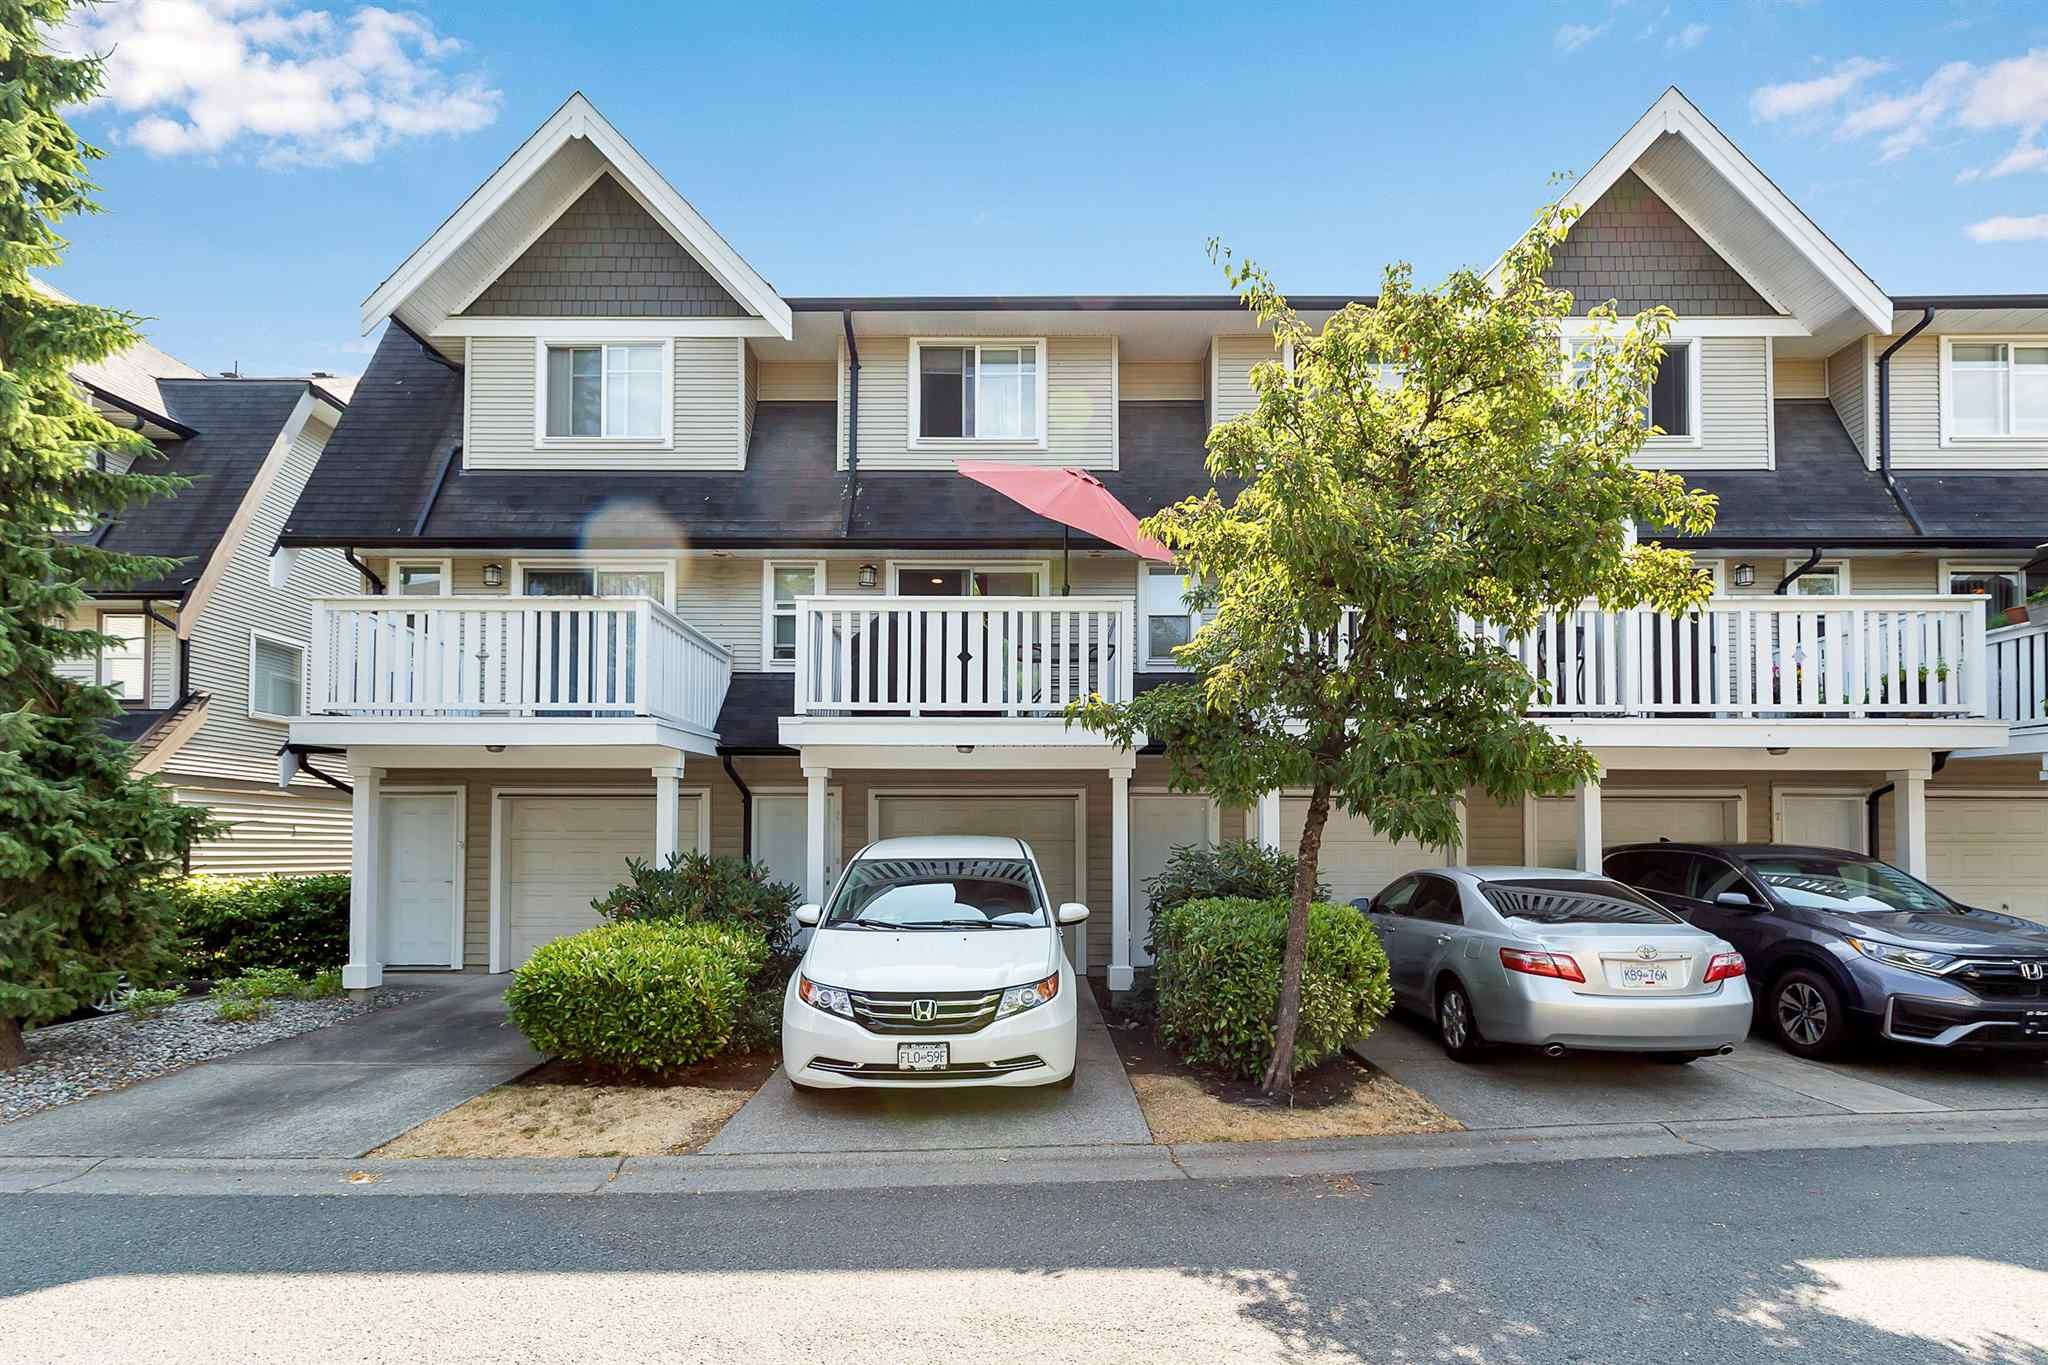 """Photo 28: Photos: 9 15871 85 Avenue in Surrey: Fleetwood Tynehead Townhouse for sale in """"Huckleberry"""" : MLS®# R2606668"""